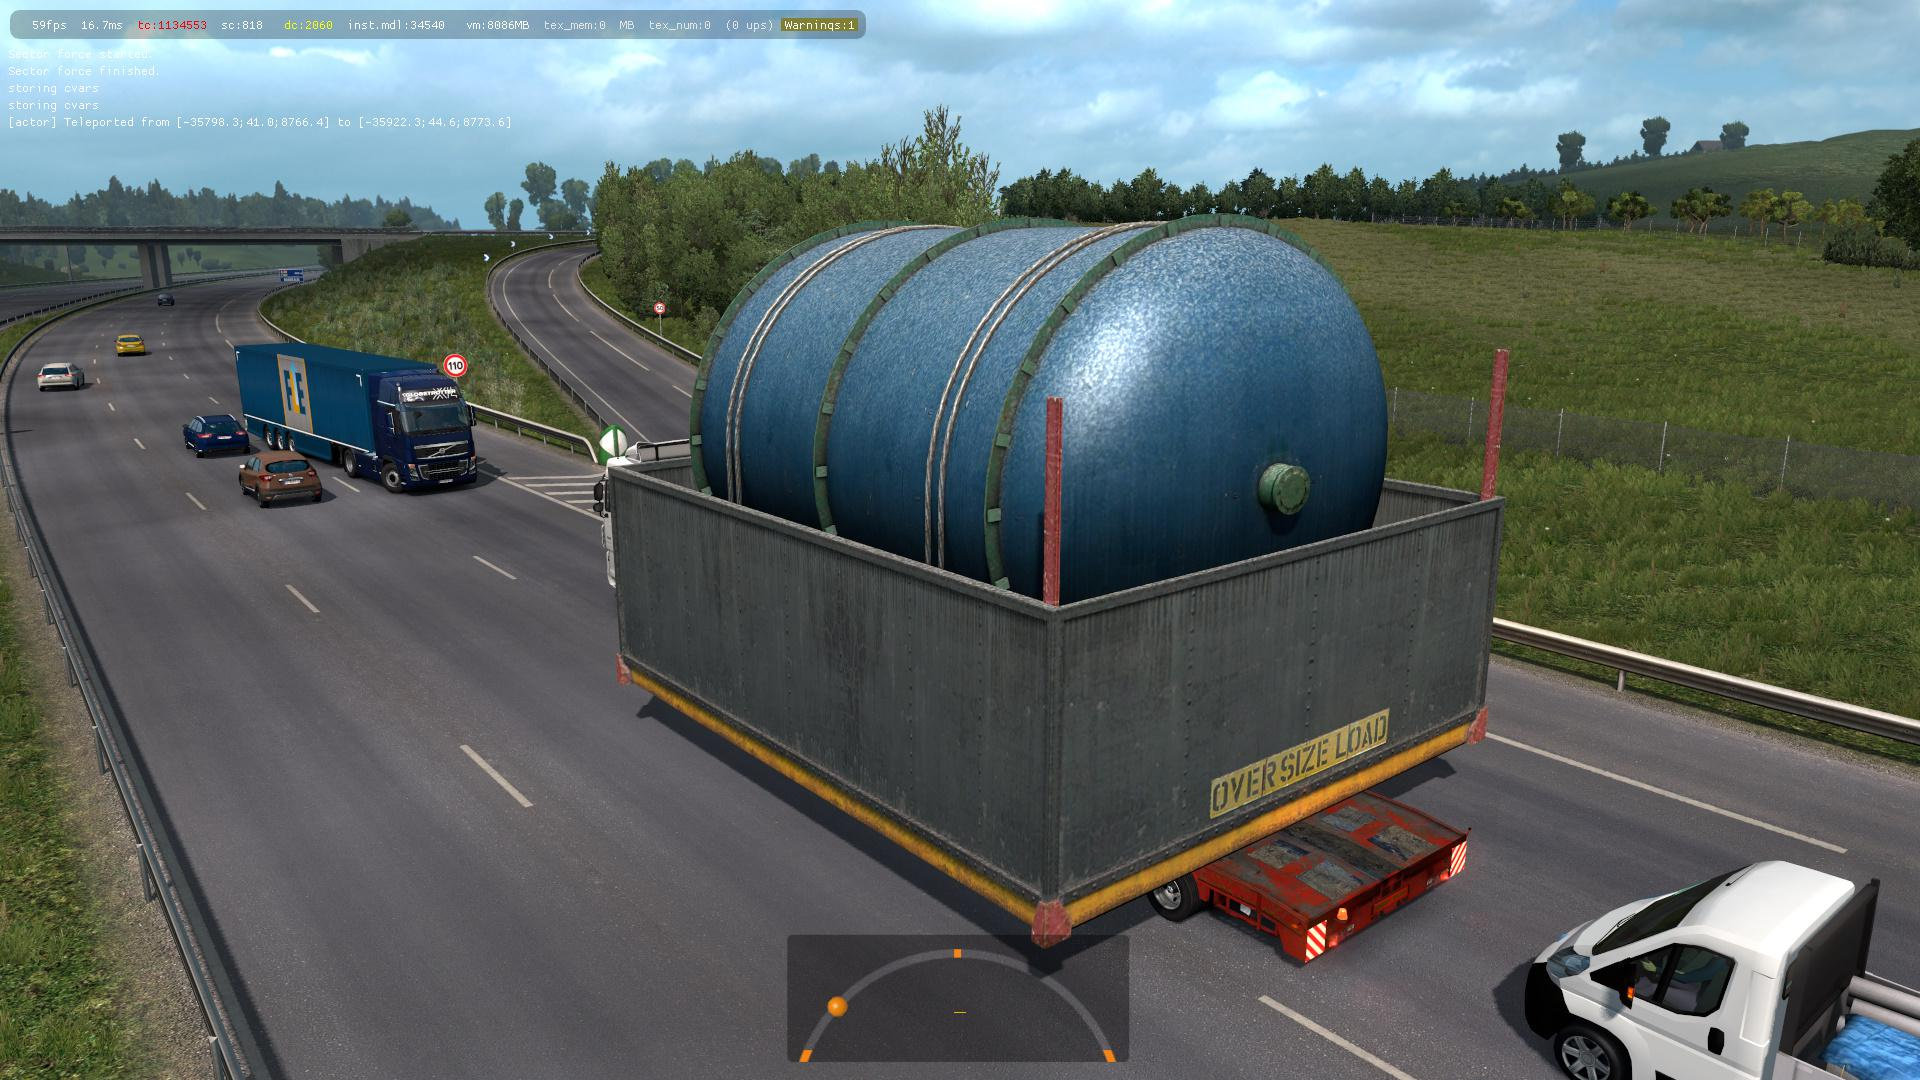 ETS2 - Oversized Trailers - Full Extreme in Traffic Mod (1.39.x)